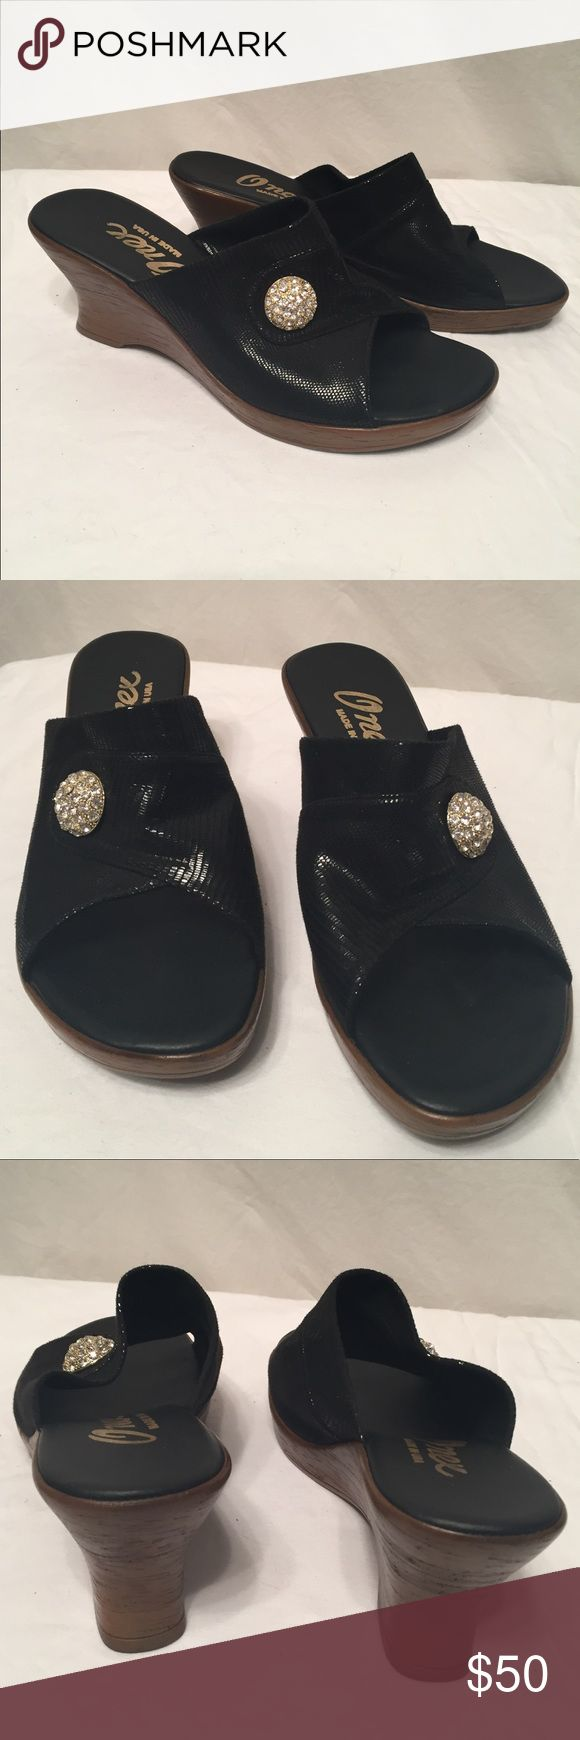 "Stunning Onex sandals. Selling a stunning pair of Onex bling slip on wedge sandals. Made in USA. Sz 8.5. Shiny black fabric. 2.3/4"" heel. Soft foot cushion. Bling button on top exc cond  smoke free home Onex Shoes Wedges"